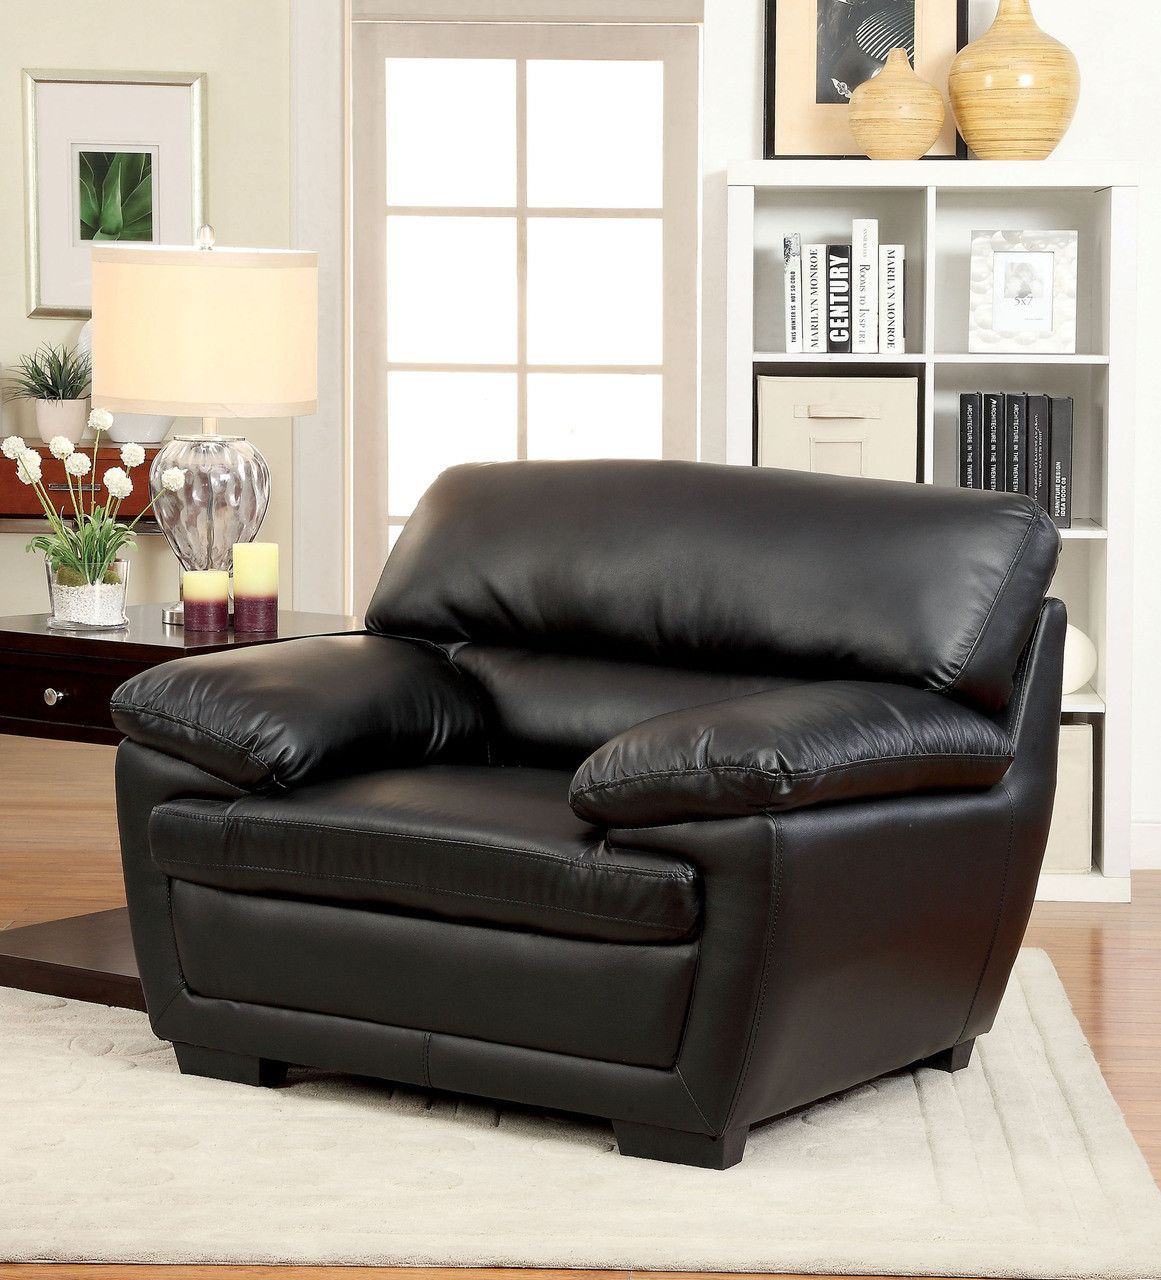 CHAIR CM6172BK-CH MULLINS COLLECTIONPlush padded leatherette cushions with a touch of modern crafted style.  Sale for $277